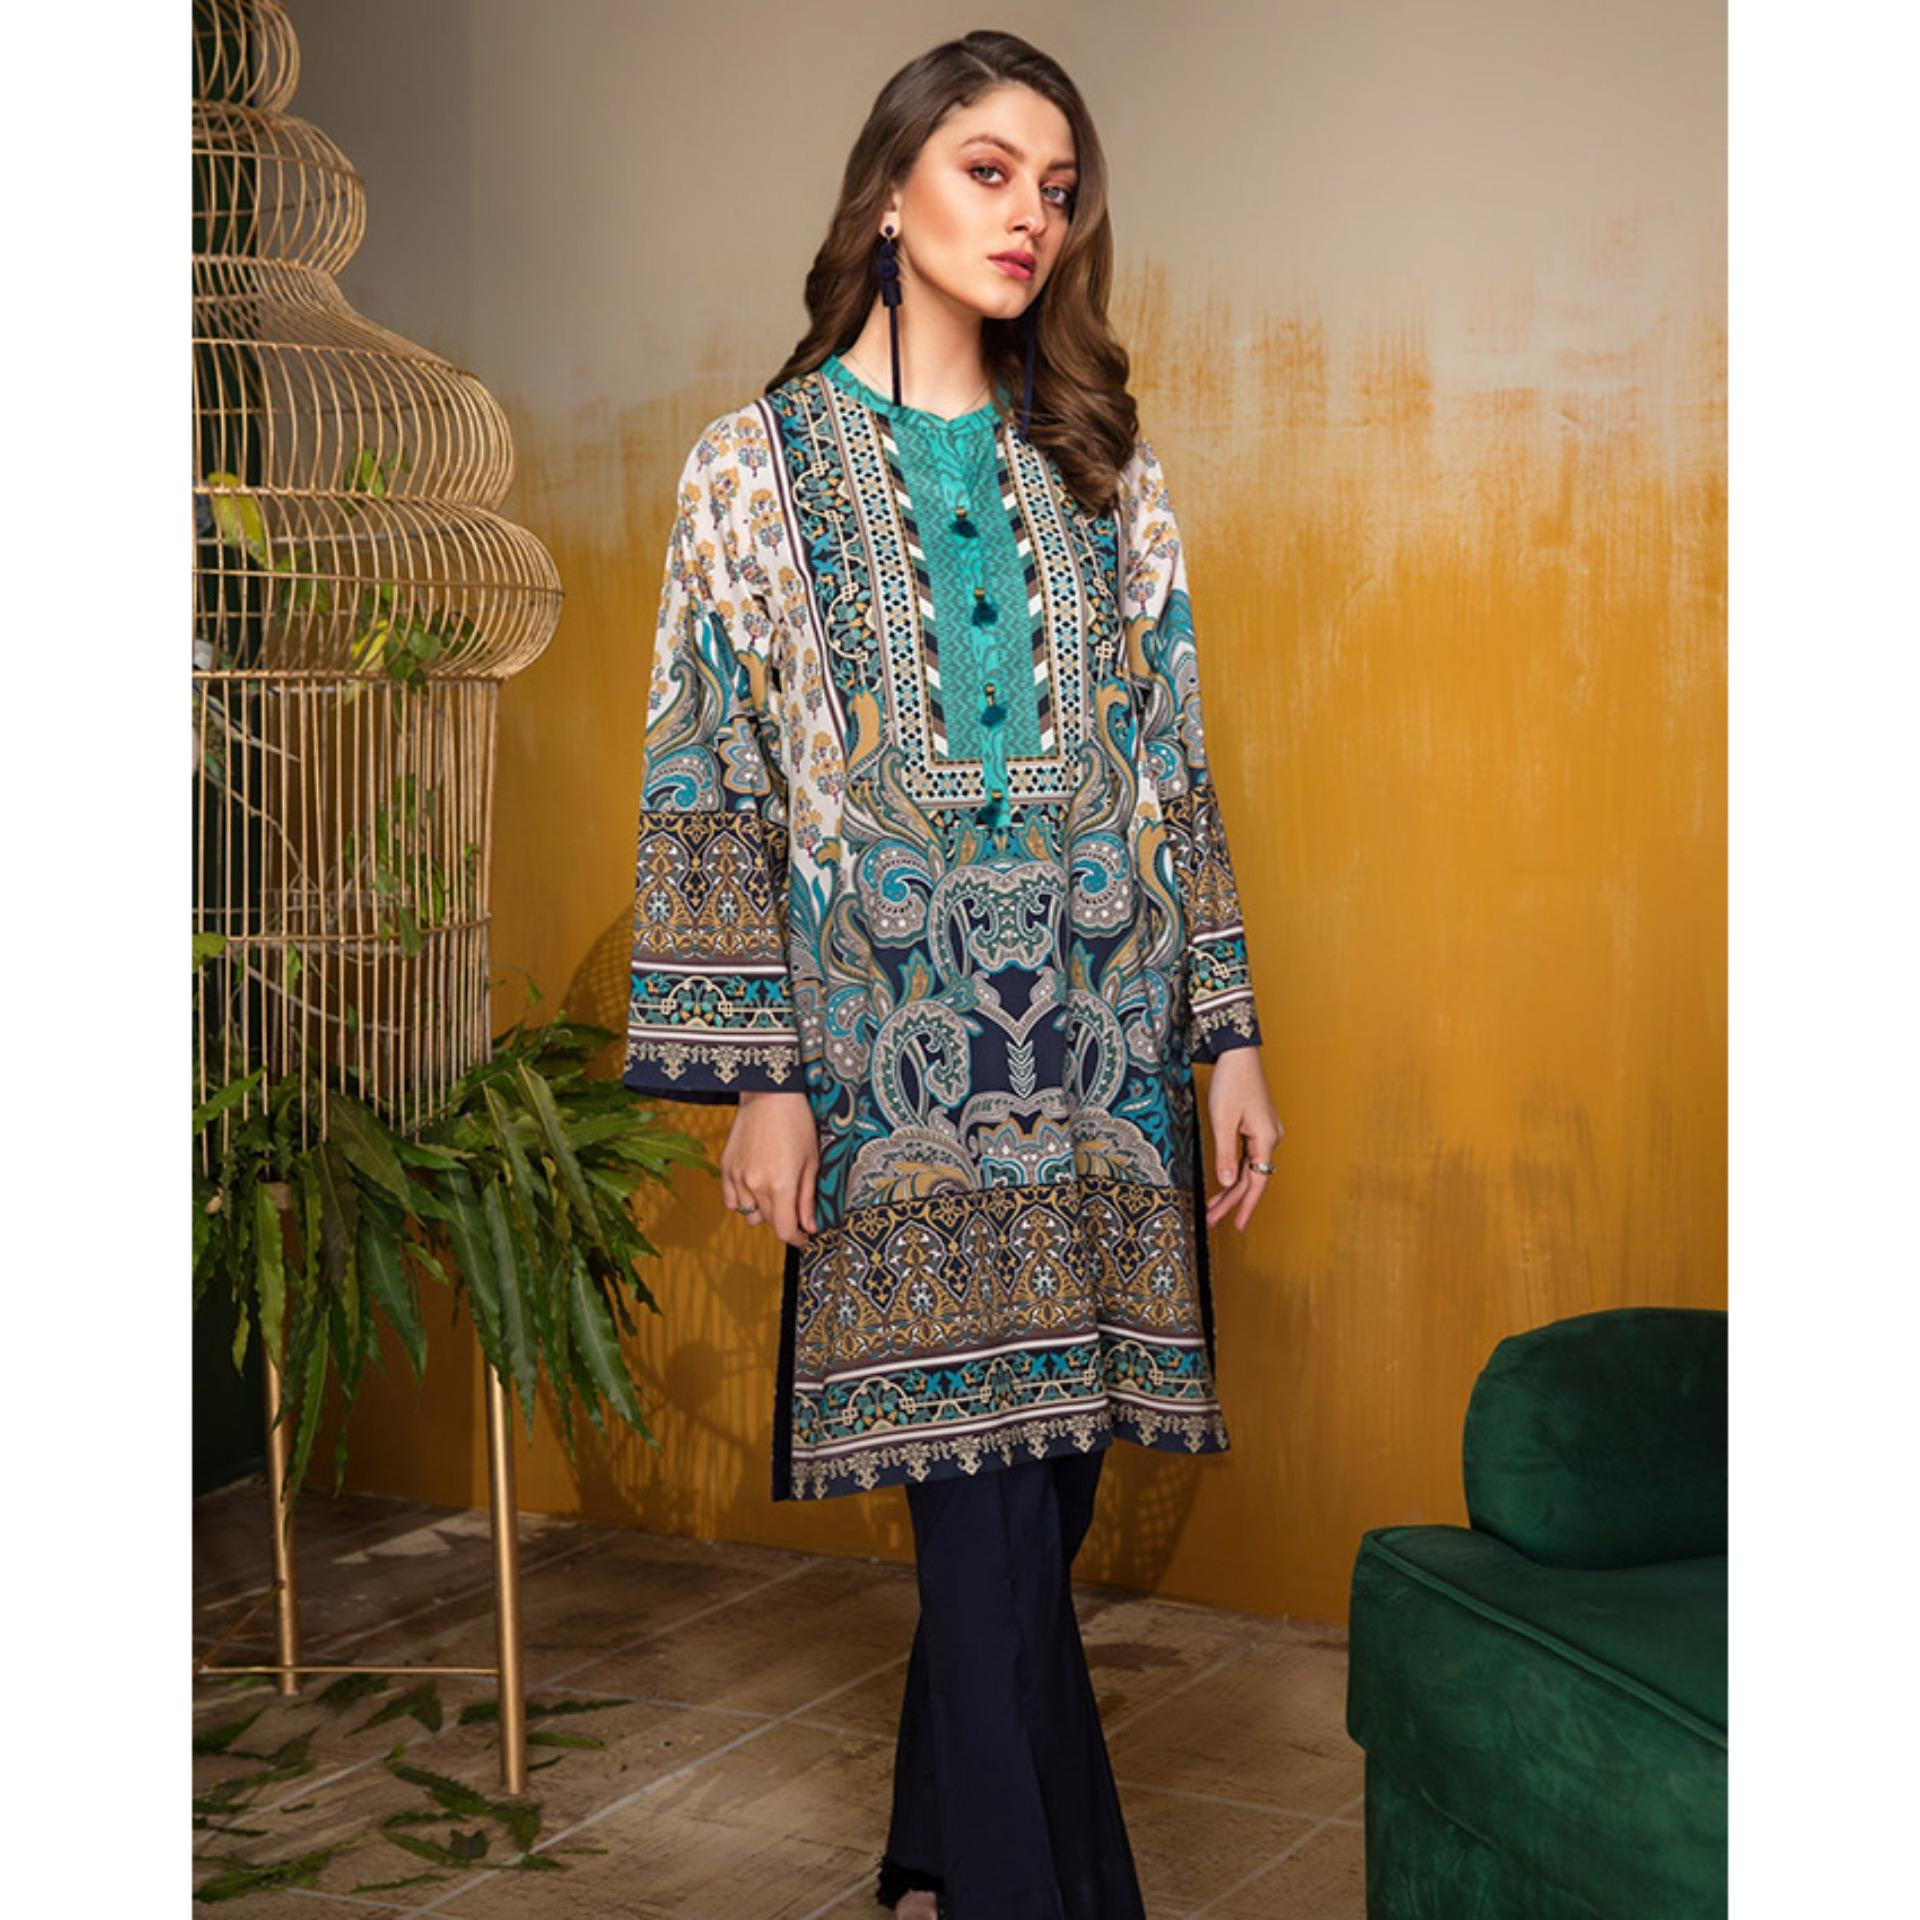 7b530f1f3e Product details of Limelight Floral Forest Unstitched Single Shirt Sea  Green Lawn Collection Vol. 1 - U0650-SSH-SGN